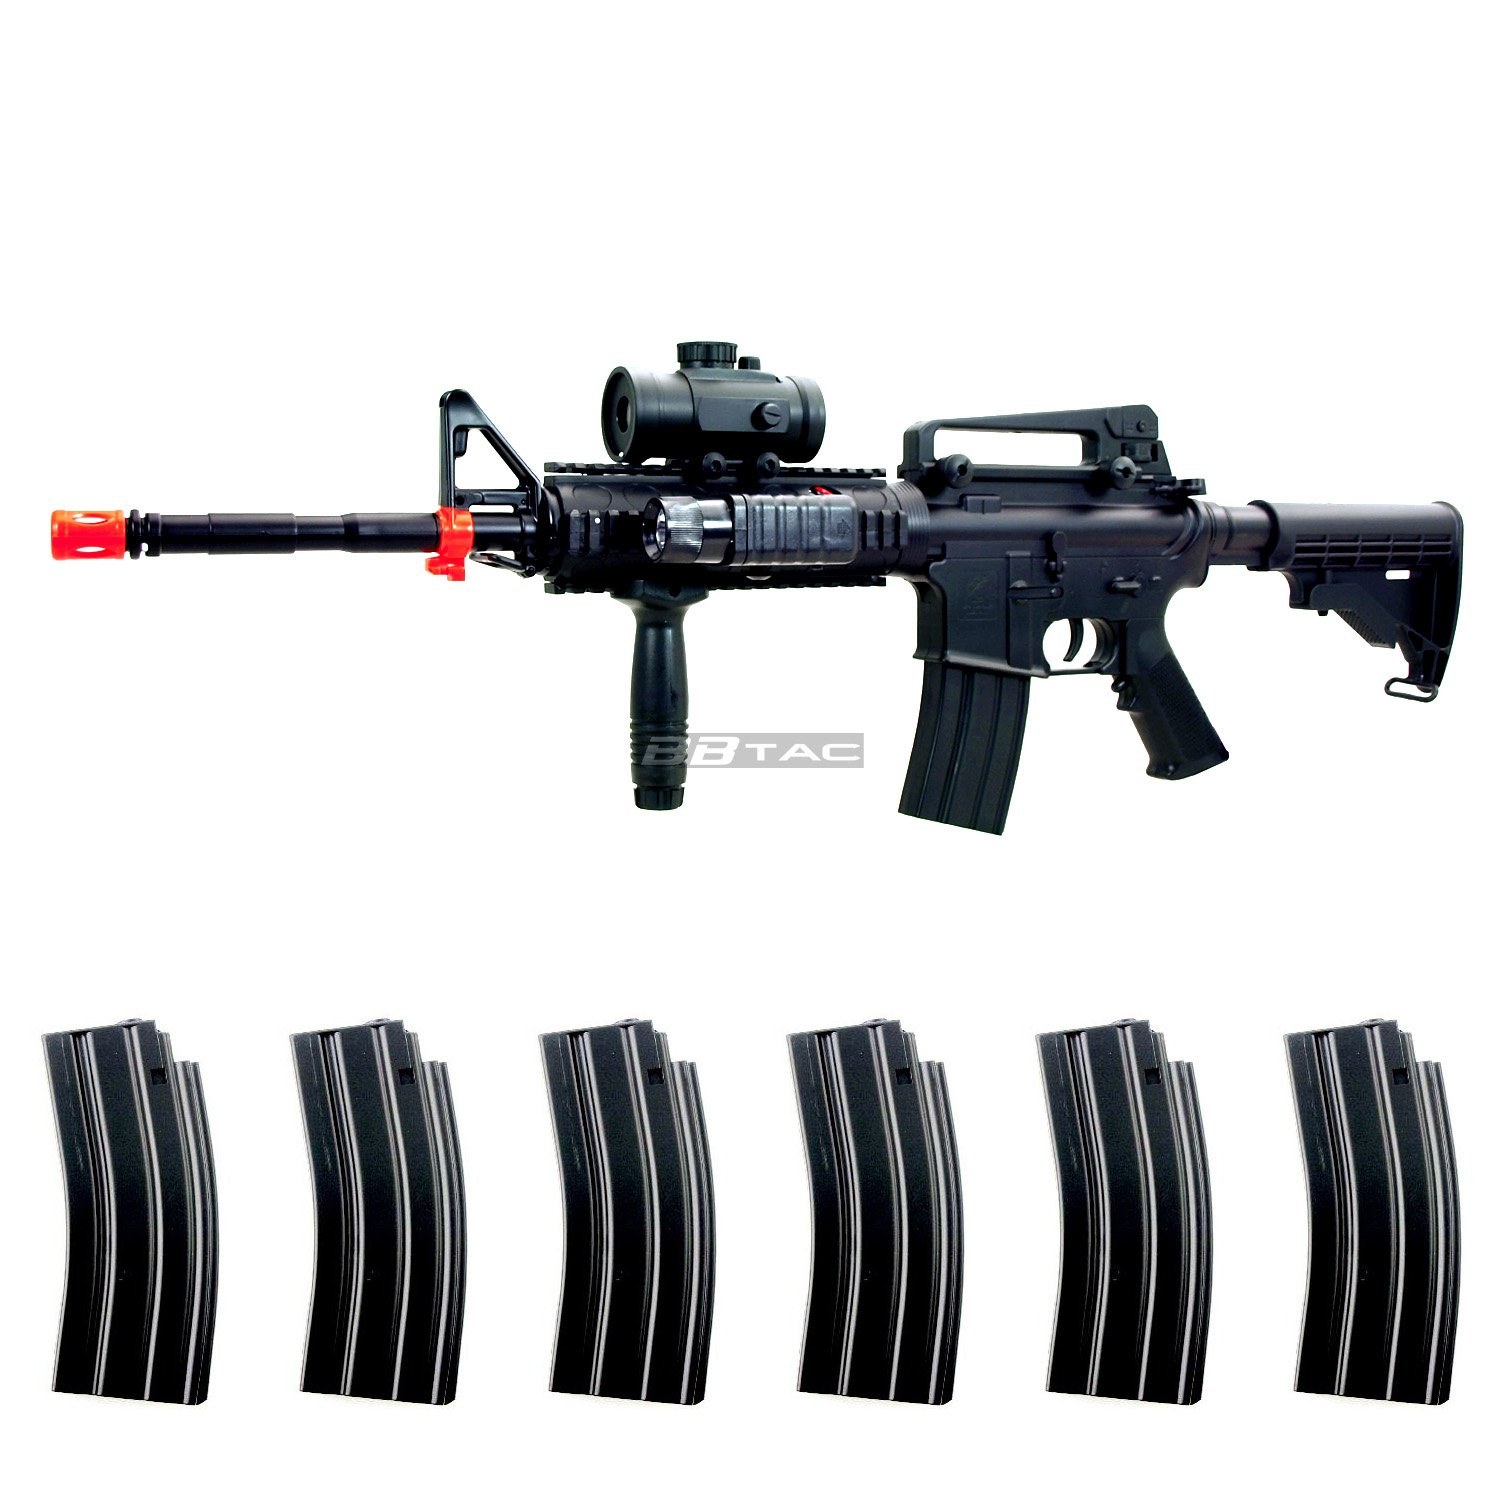 BBTac M83 Full Auto Electric Power LPEG Airsoft Gun with Warranty